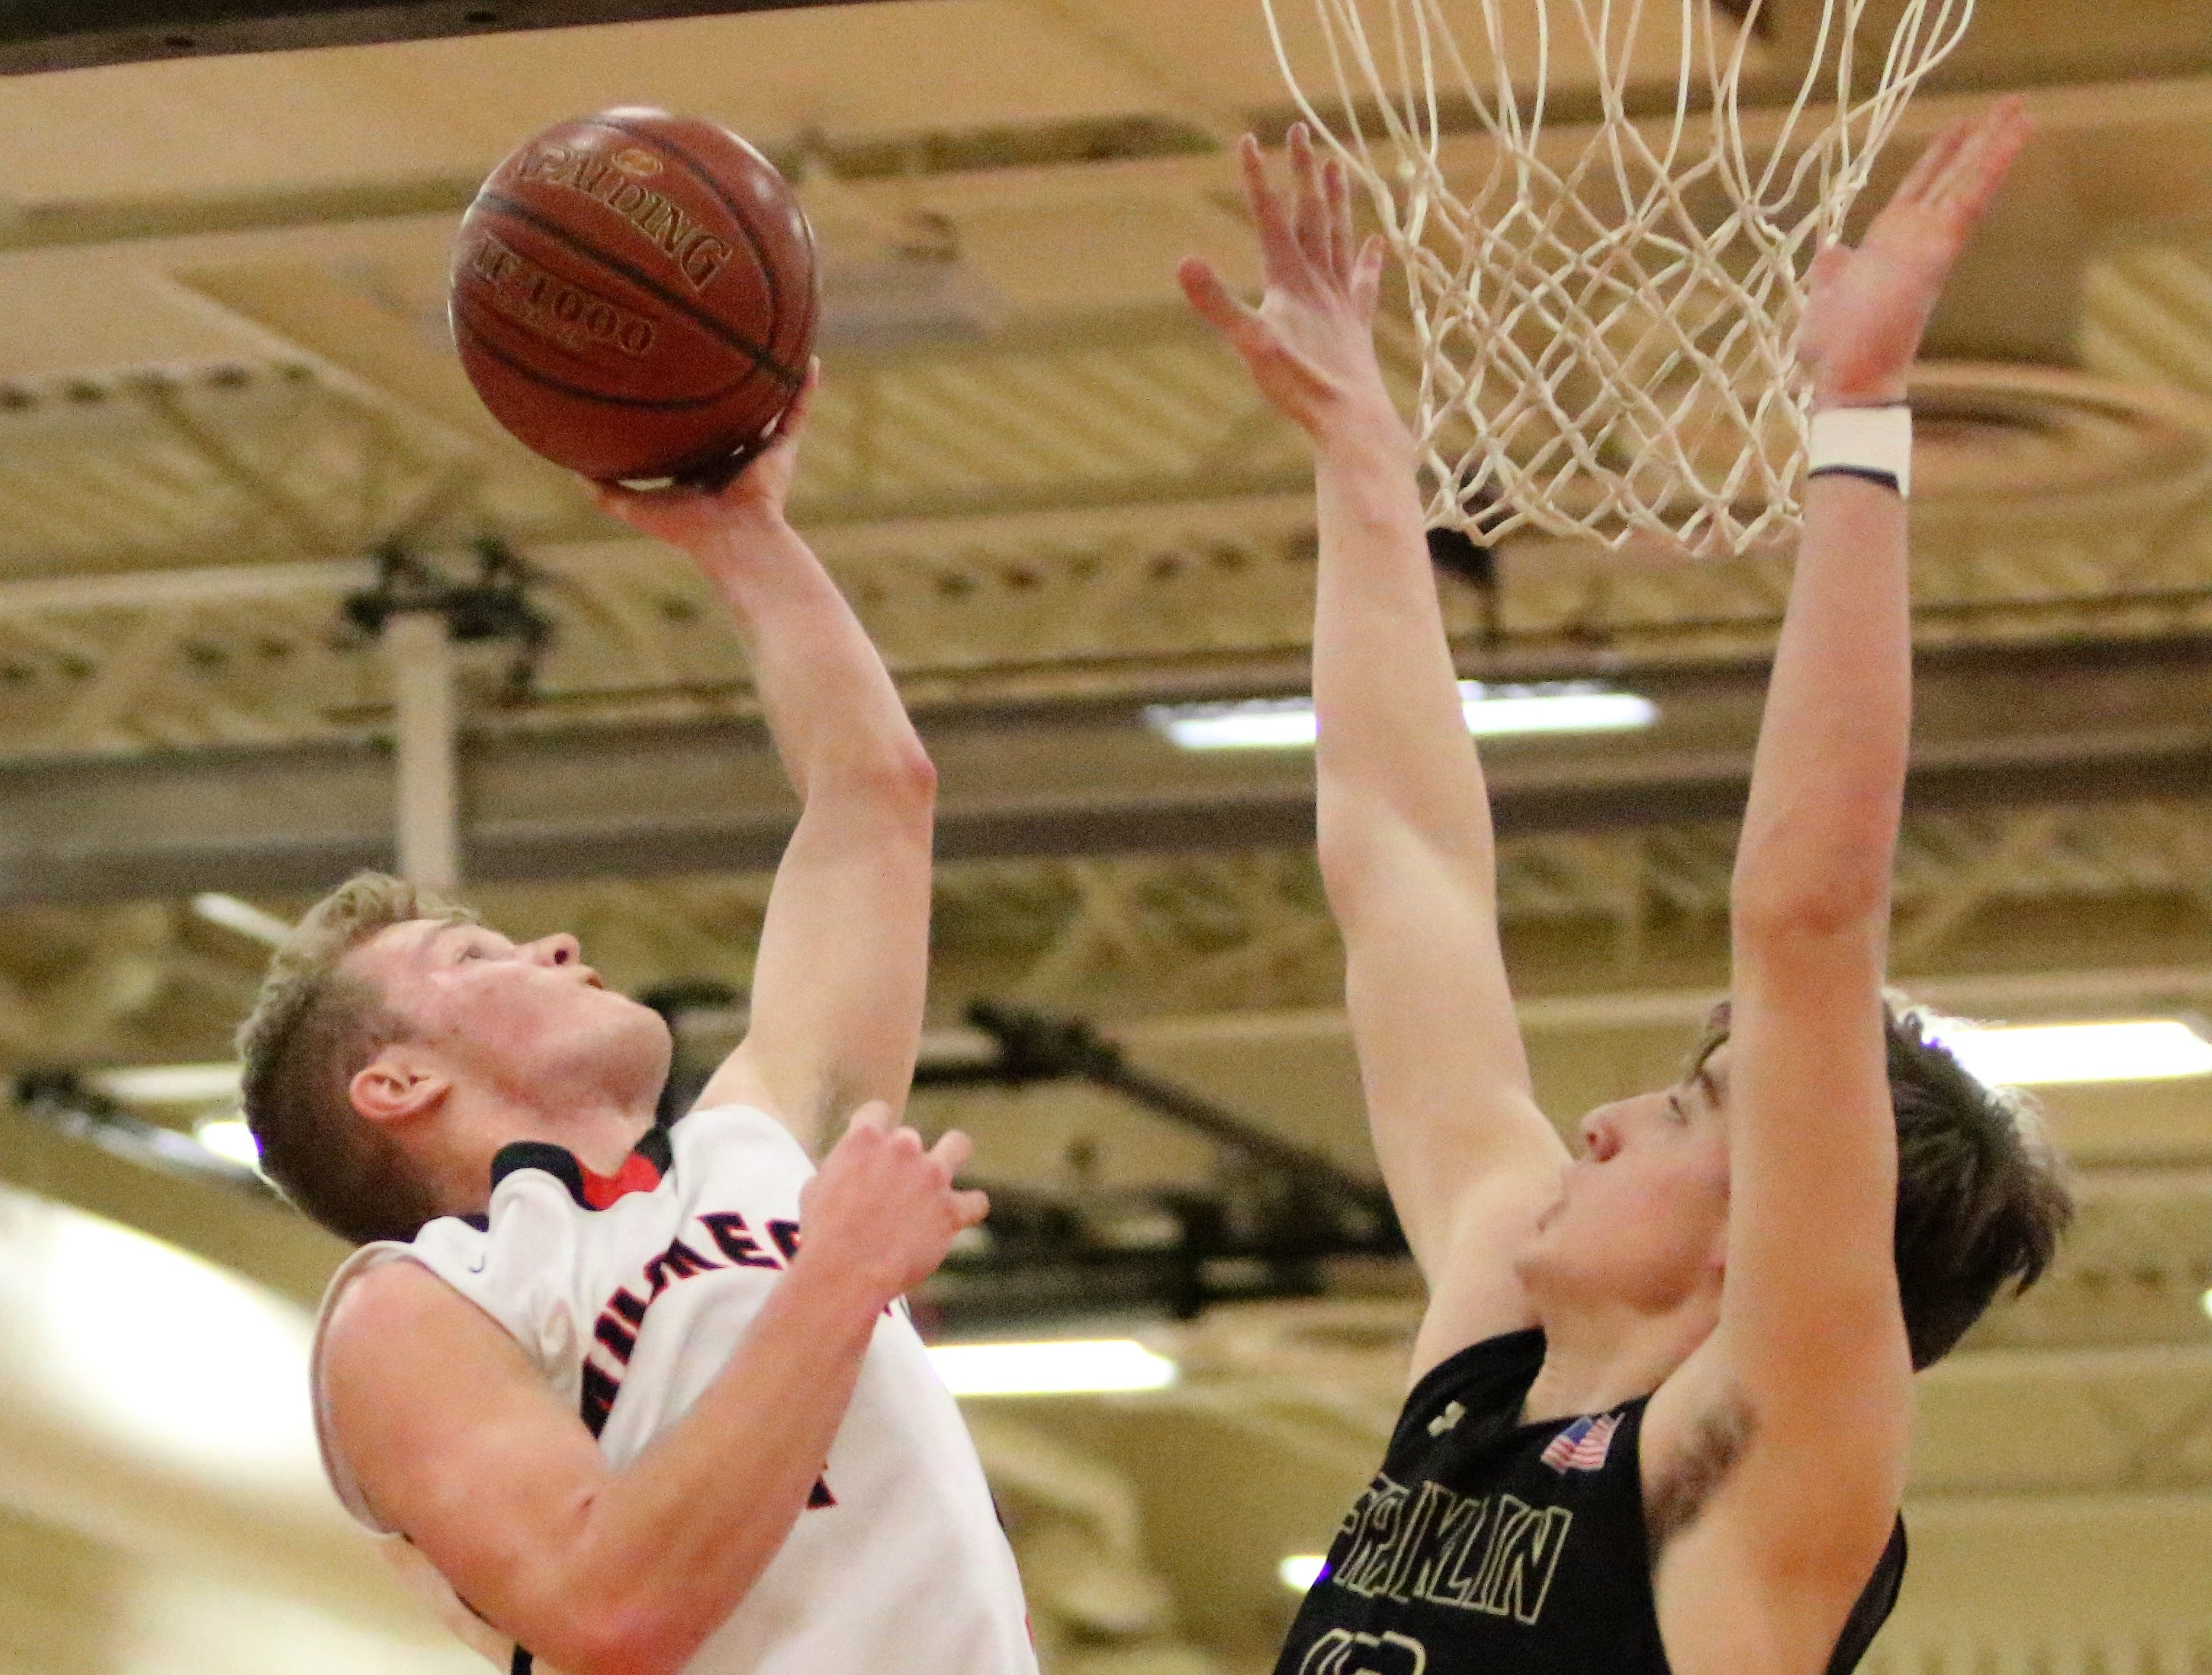 Muskego guard AJ Makinen sets the school record for scoring with a layup against Franklin on Feb. 11, 2019.